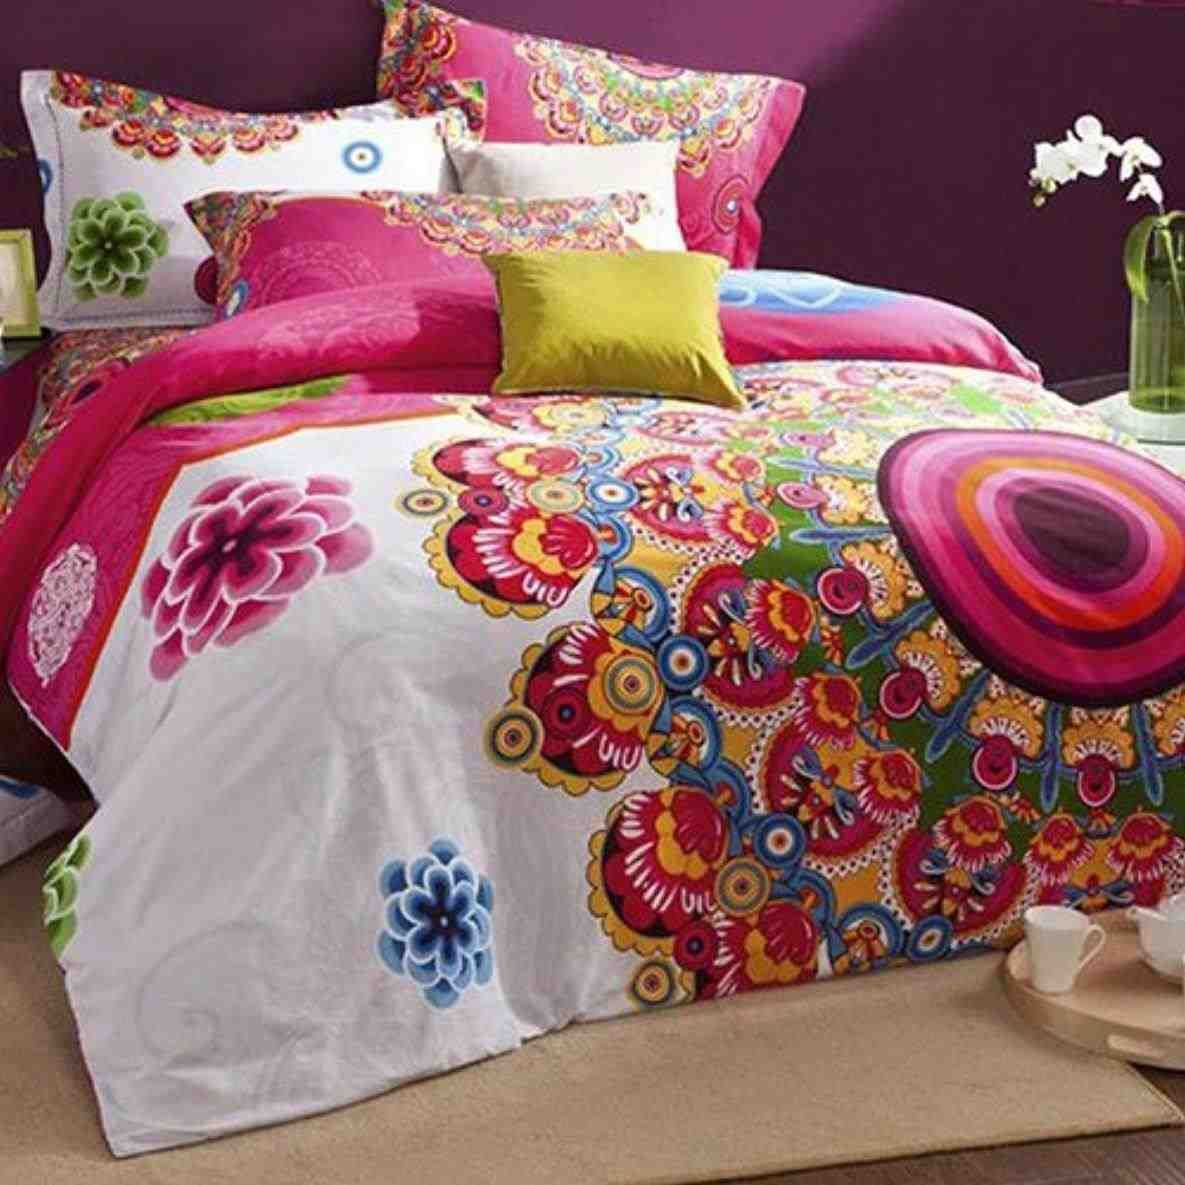 This Colorful Bedding For Adults Colorful Bedding For Adults Clearwater Comforter Set Multi Cool Baby Boho Duvet Red Bedding Sets Duvet Cover Sets Bohemian